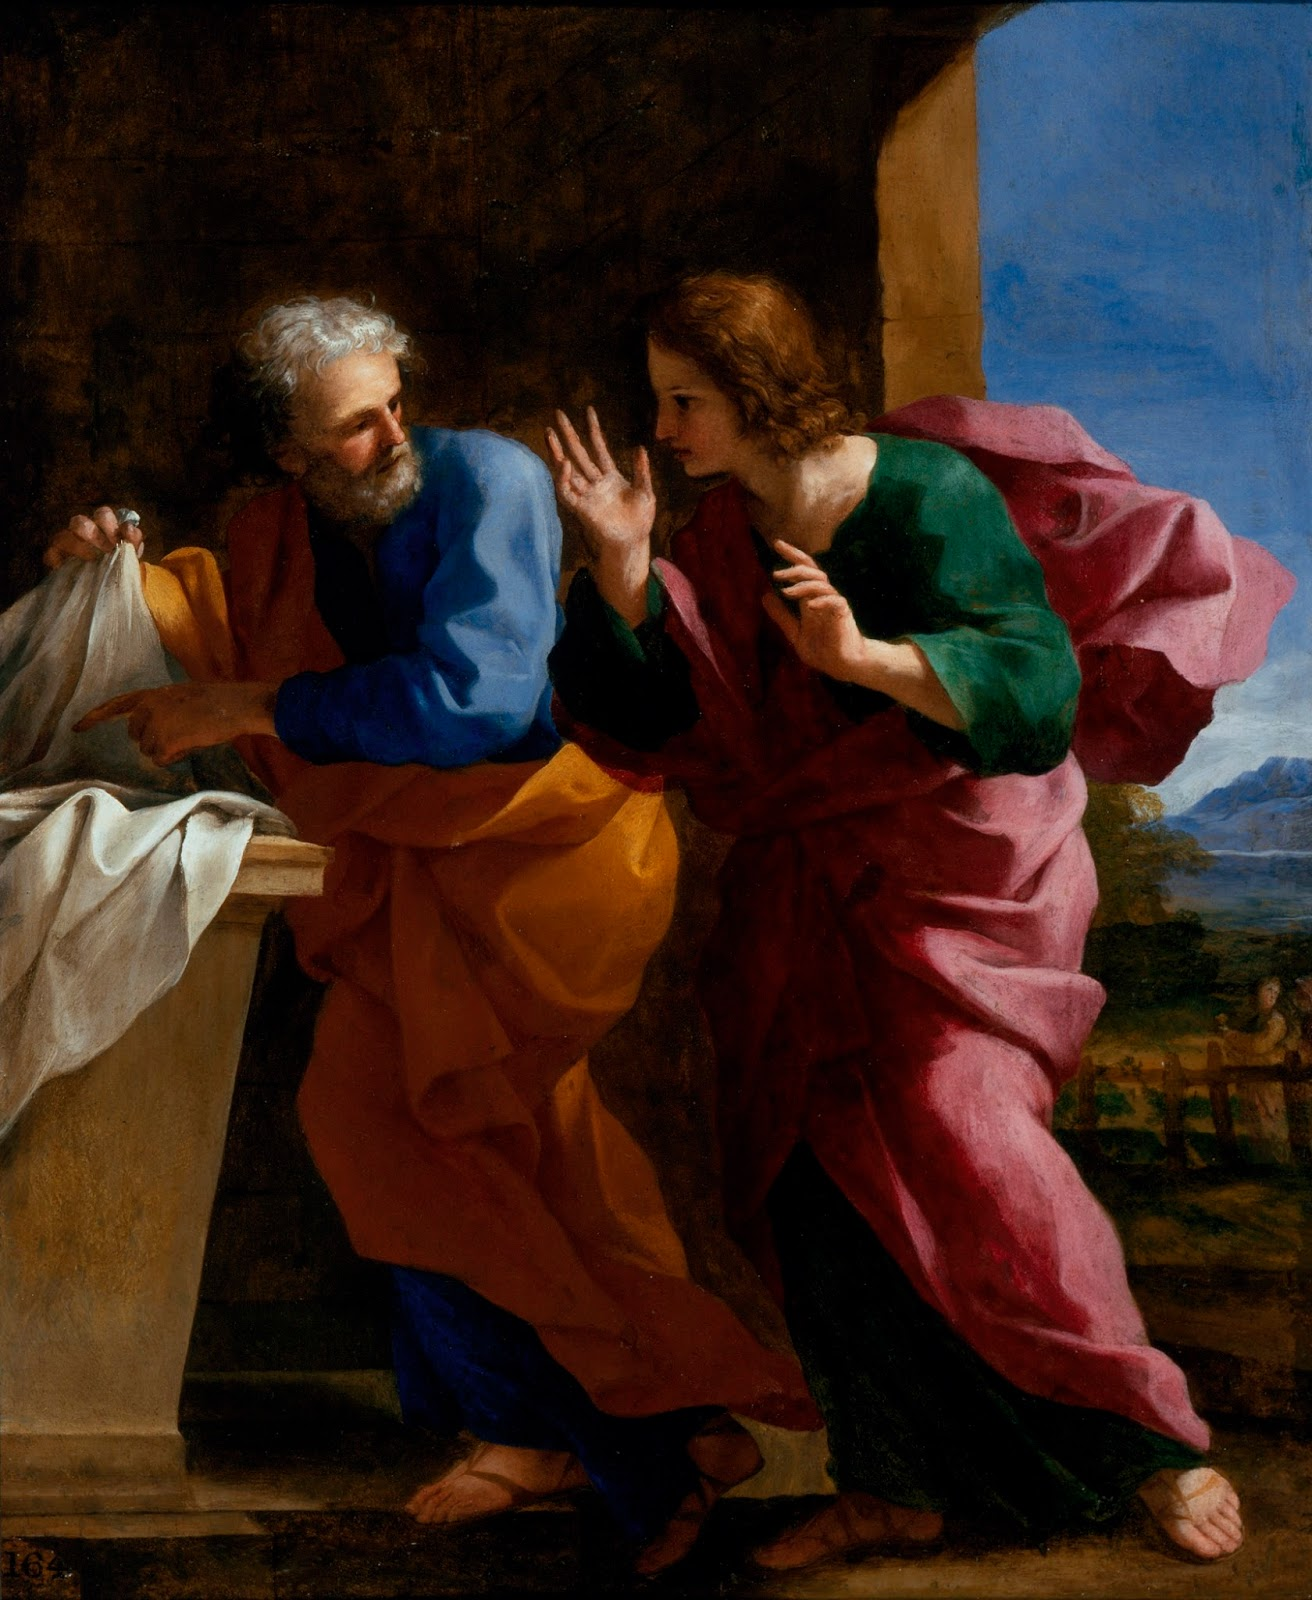 St. John and St. Peter at Christ's Tomb, by Giovanni Francesco Romanelli, 1640